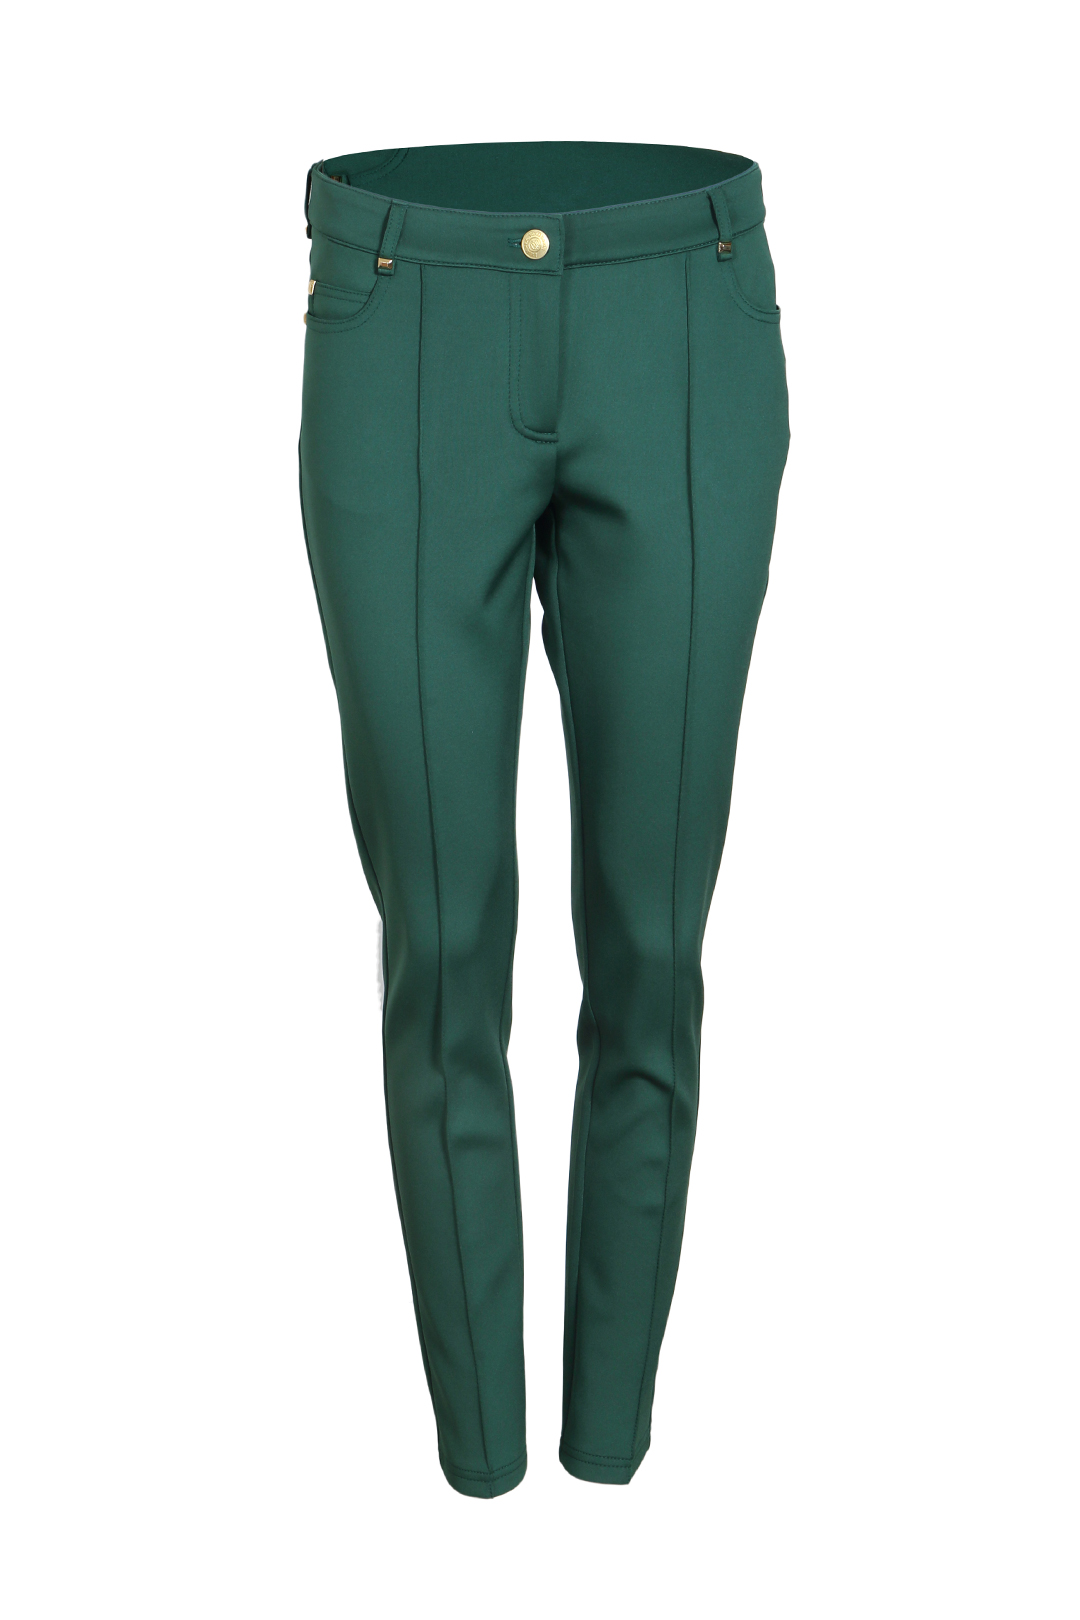 Jersey Jeans, emerald with gold studs